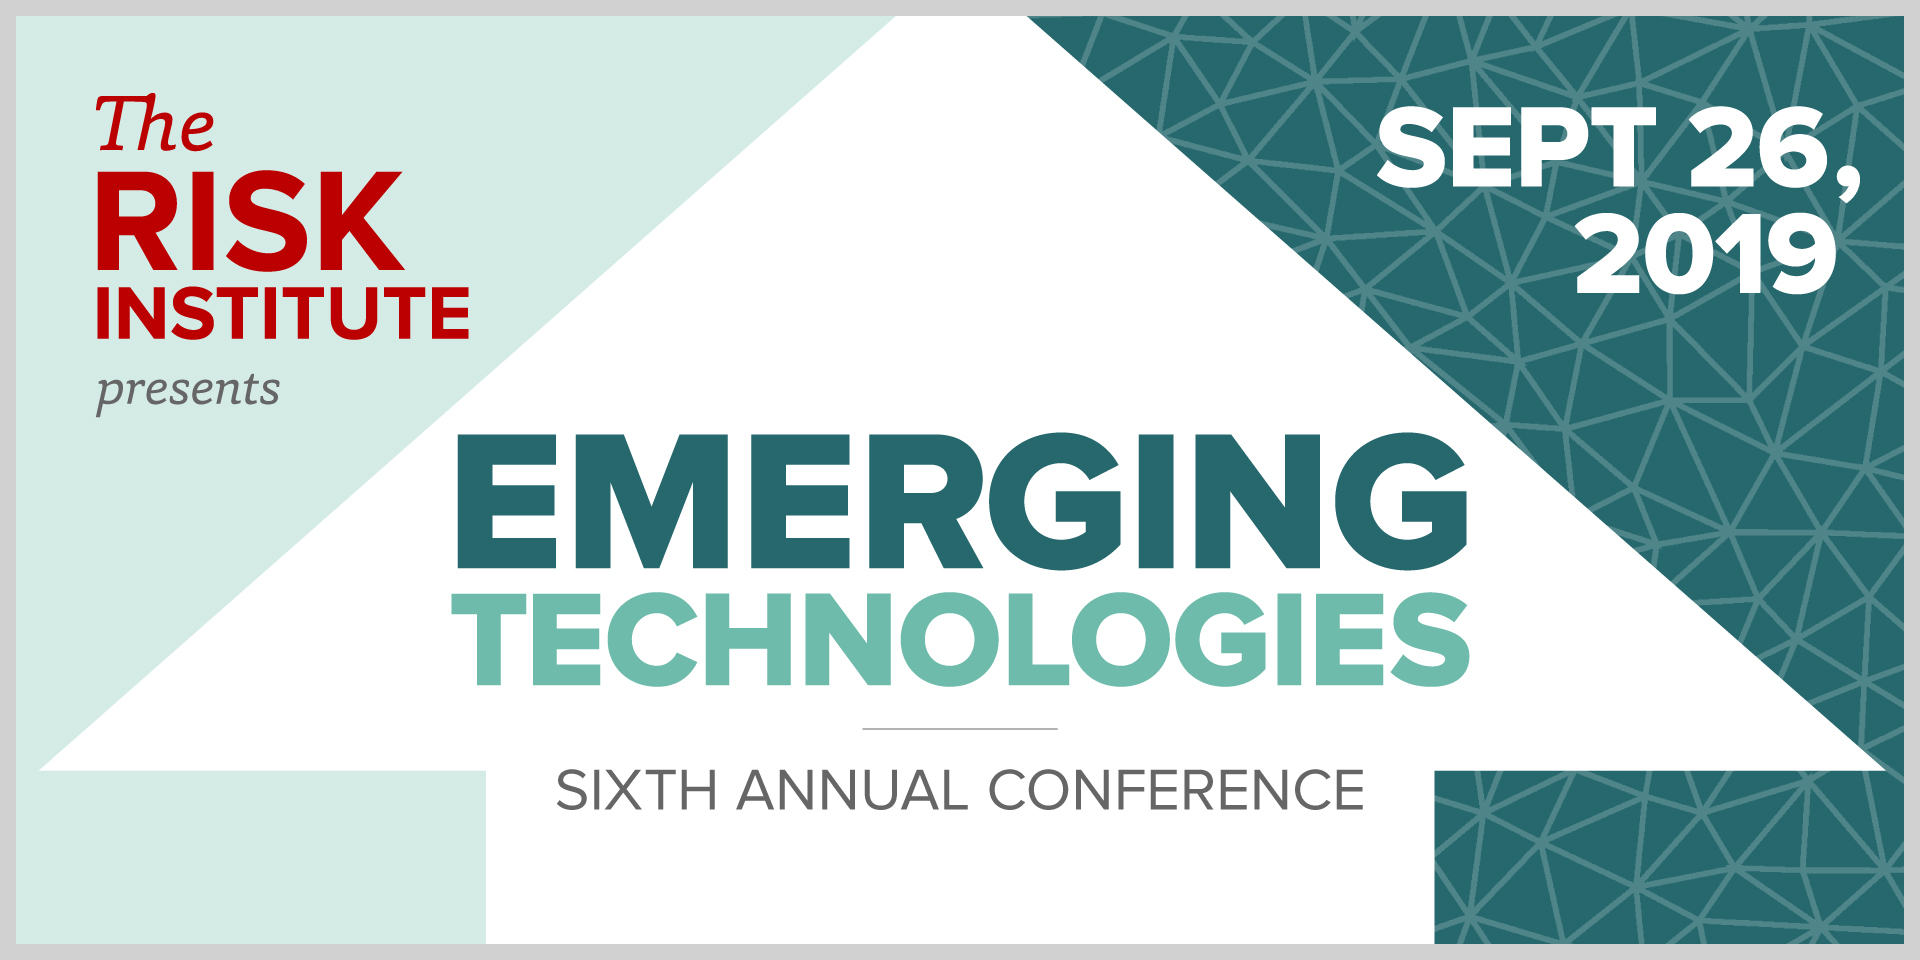 image of emerging technologies conference banner